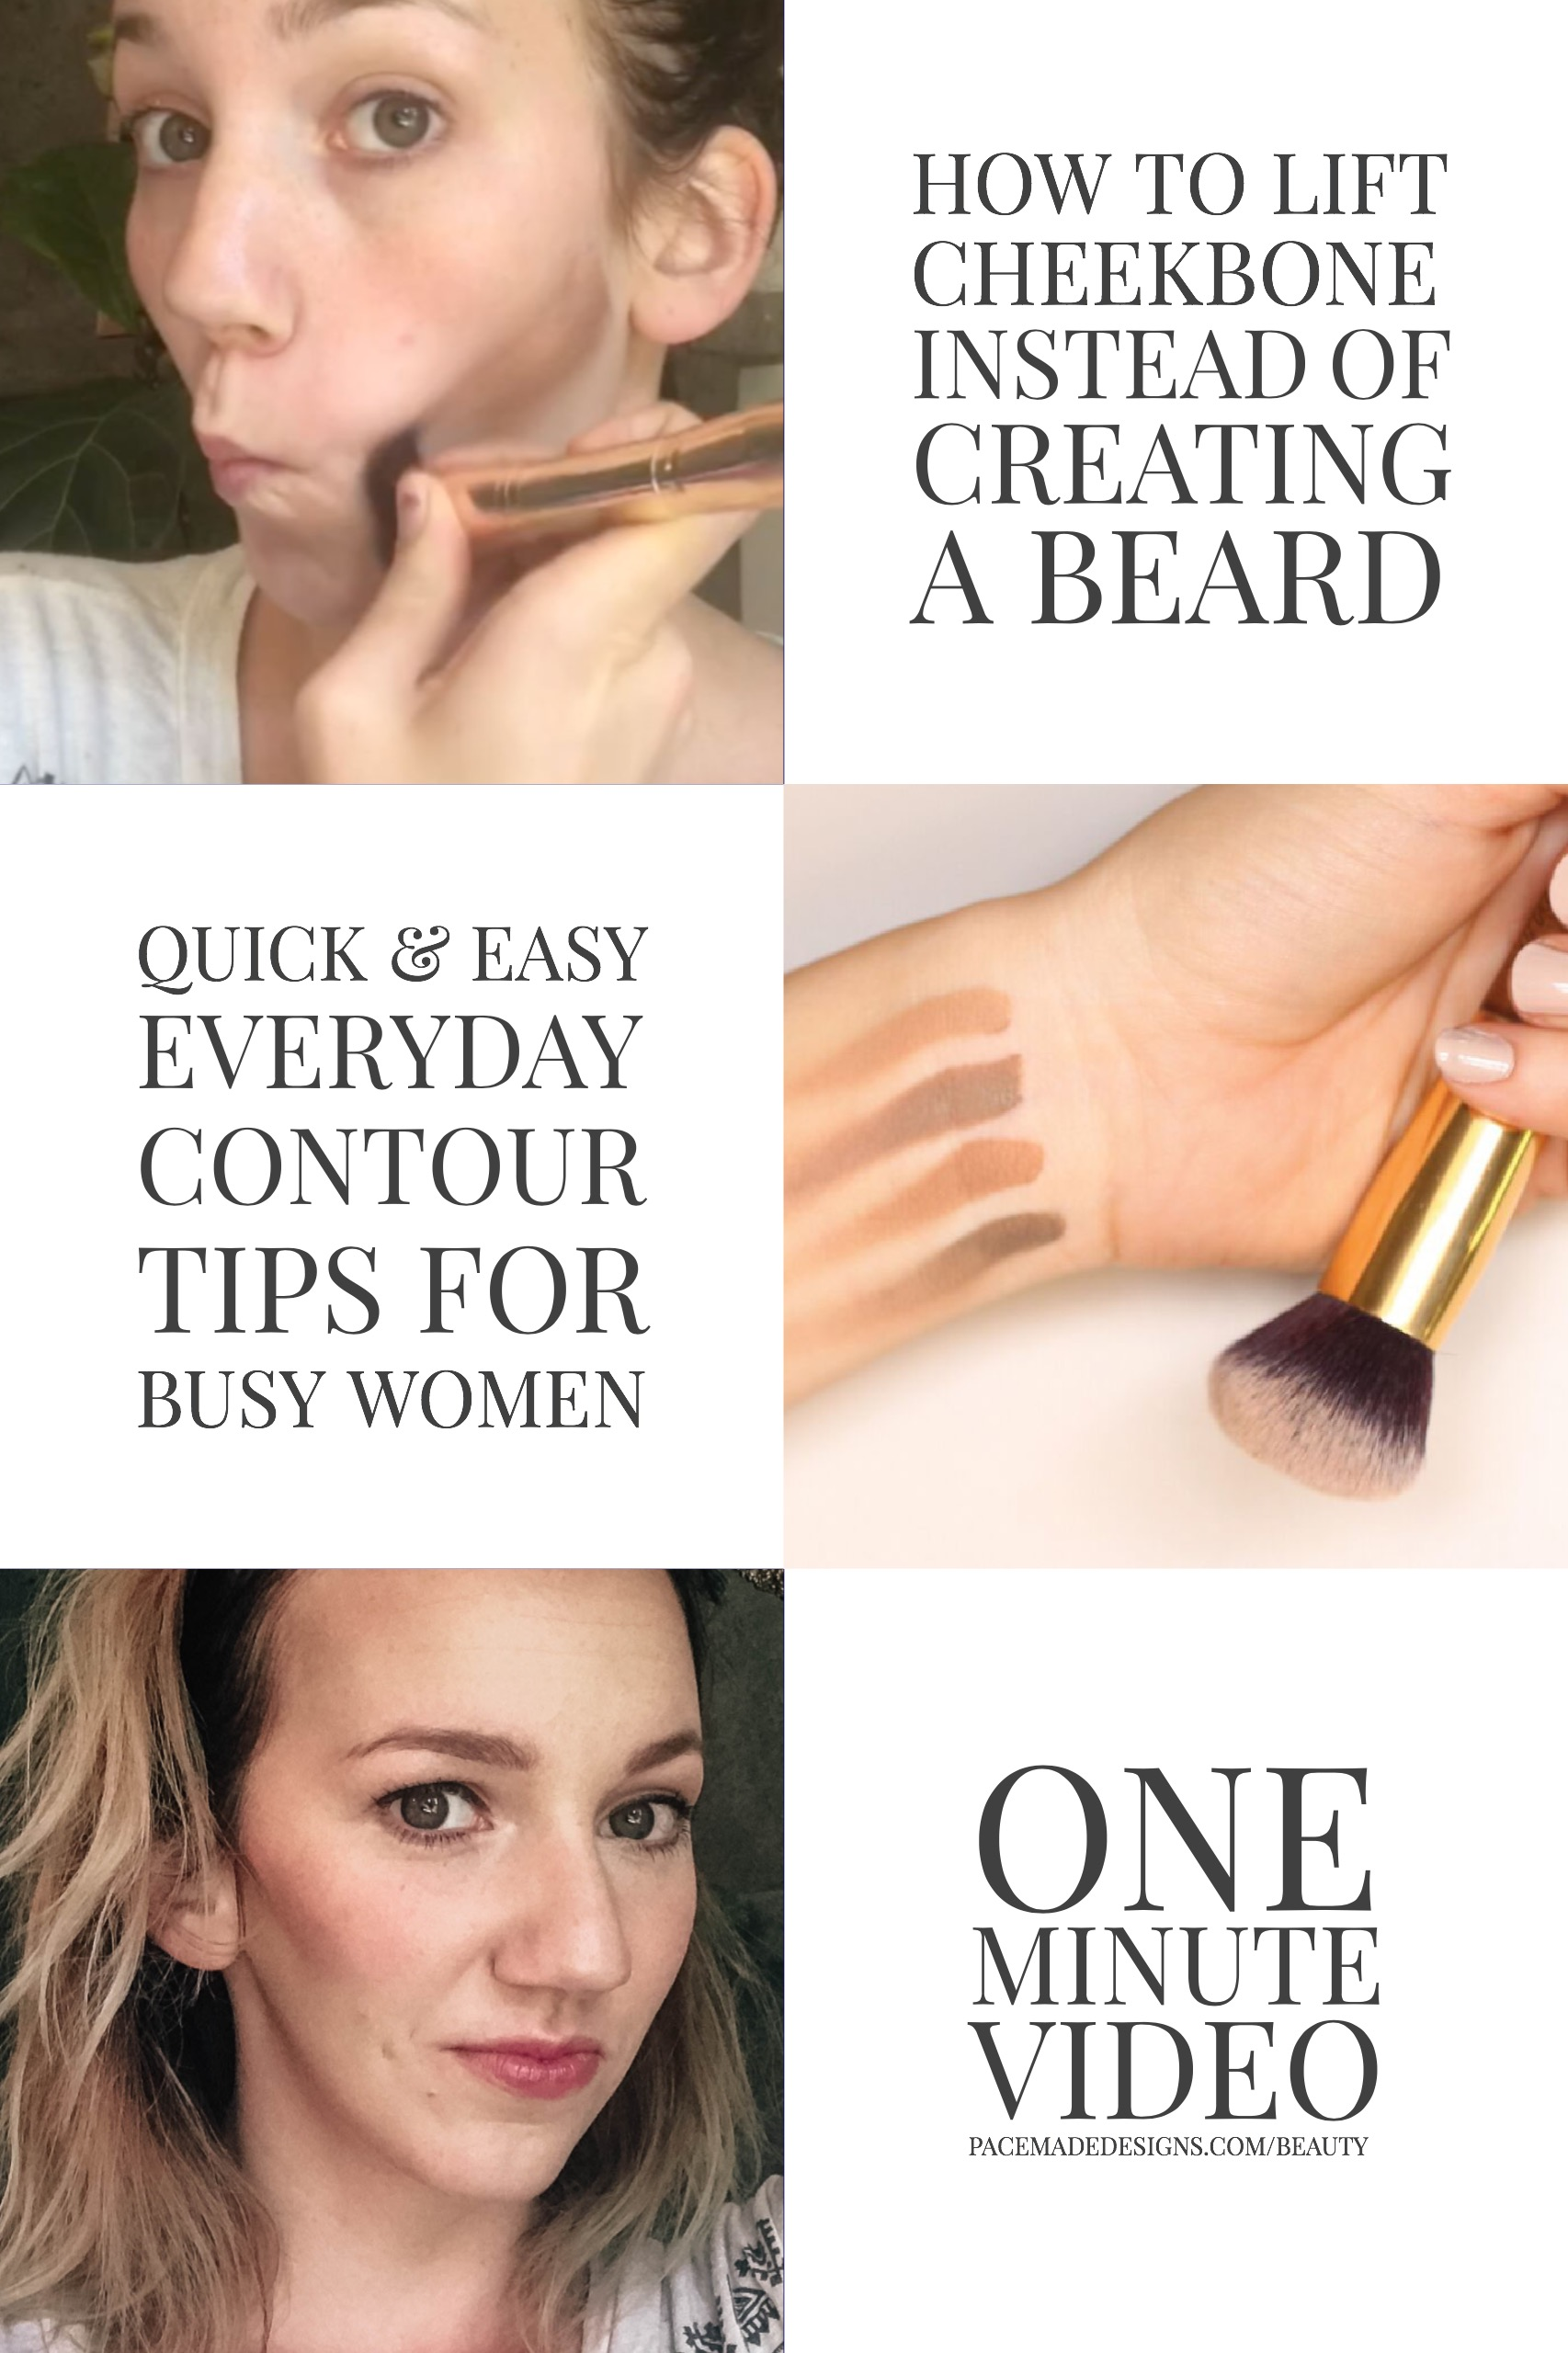 ou want to put the contour on the lower part of your cheekbone, the blush on the ball of the cheekbone, and the illuminator on the top of the cheekbone. Watch the video to understand the common mistakes and how to give that cheekbone a little lift.